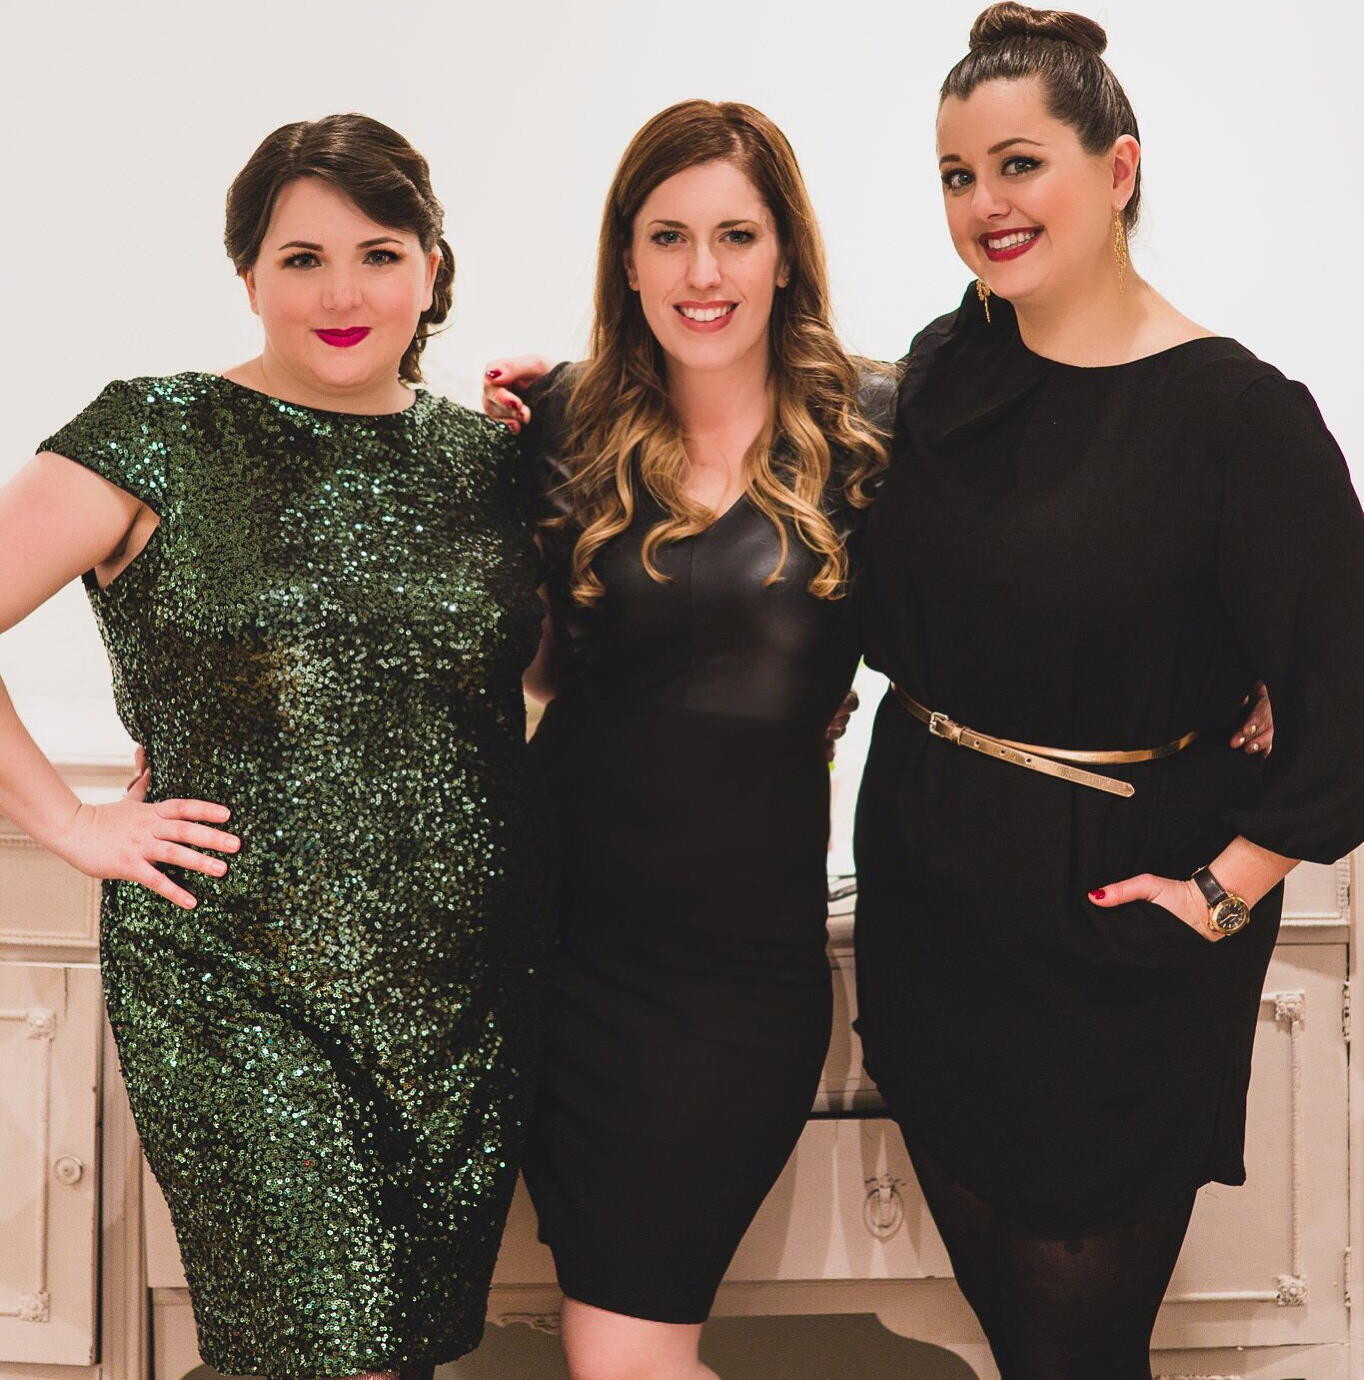 Meaghan Brunetti, Elise Schmitz & Jenna Brunetti, The Handmade Bride Launch Party